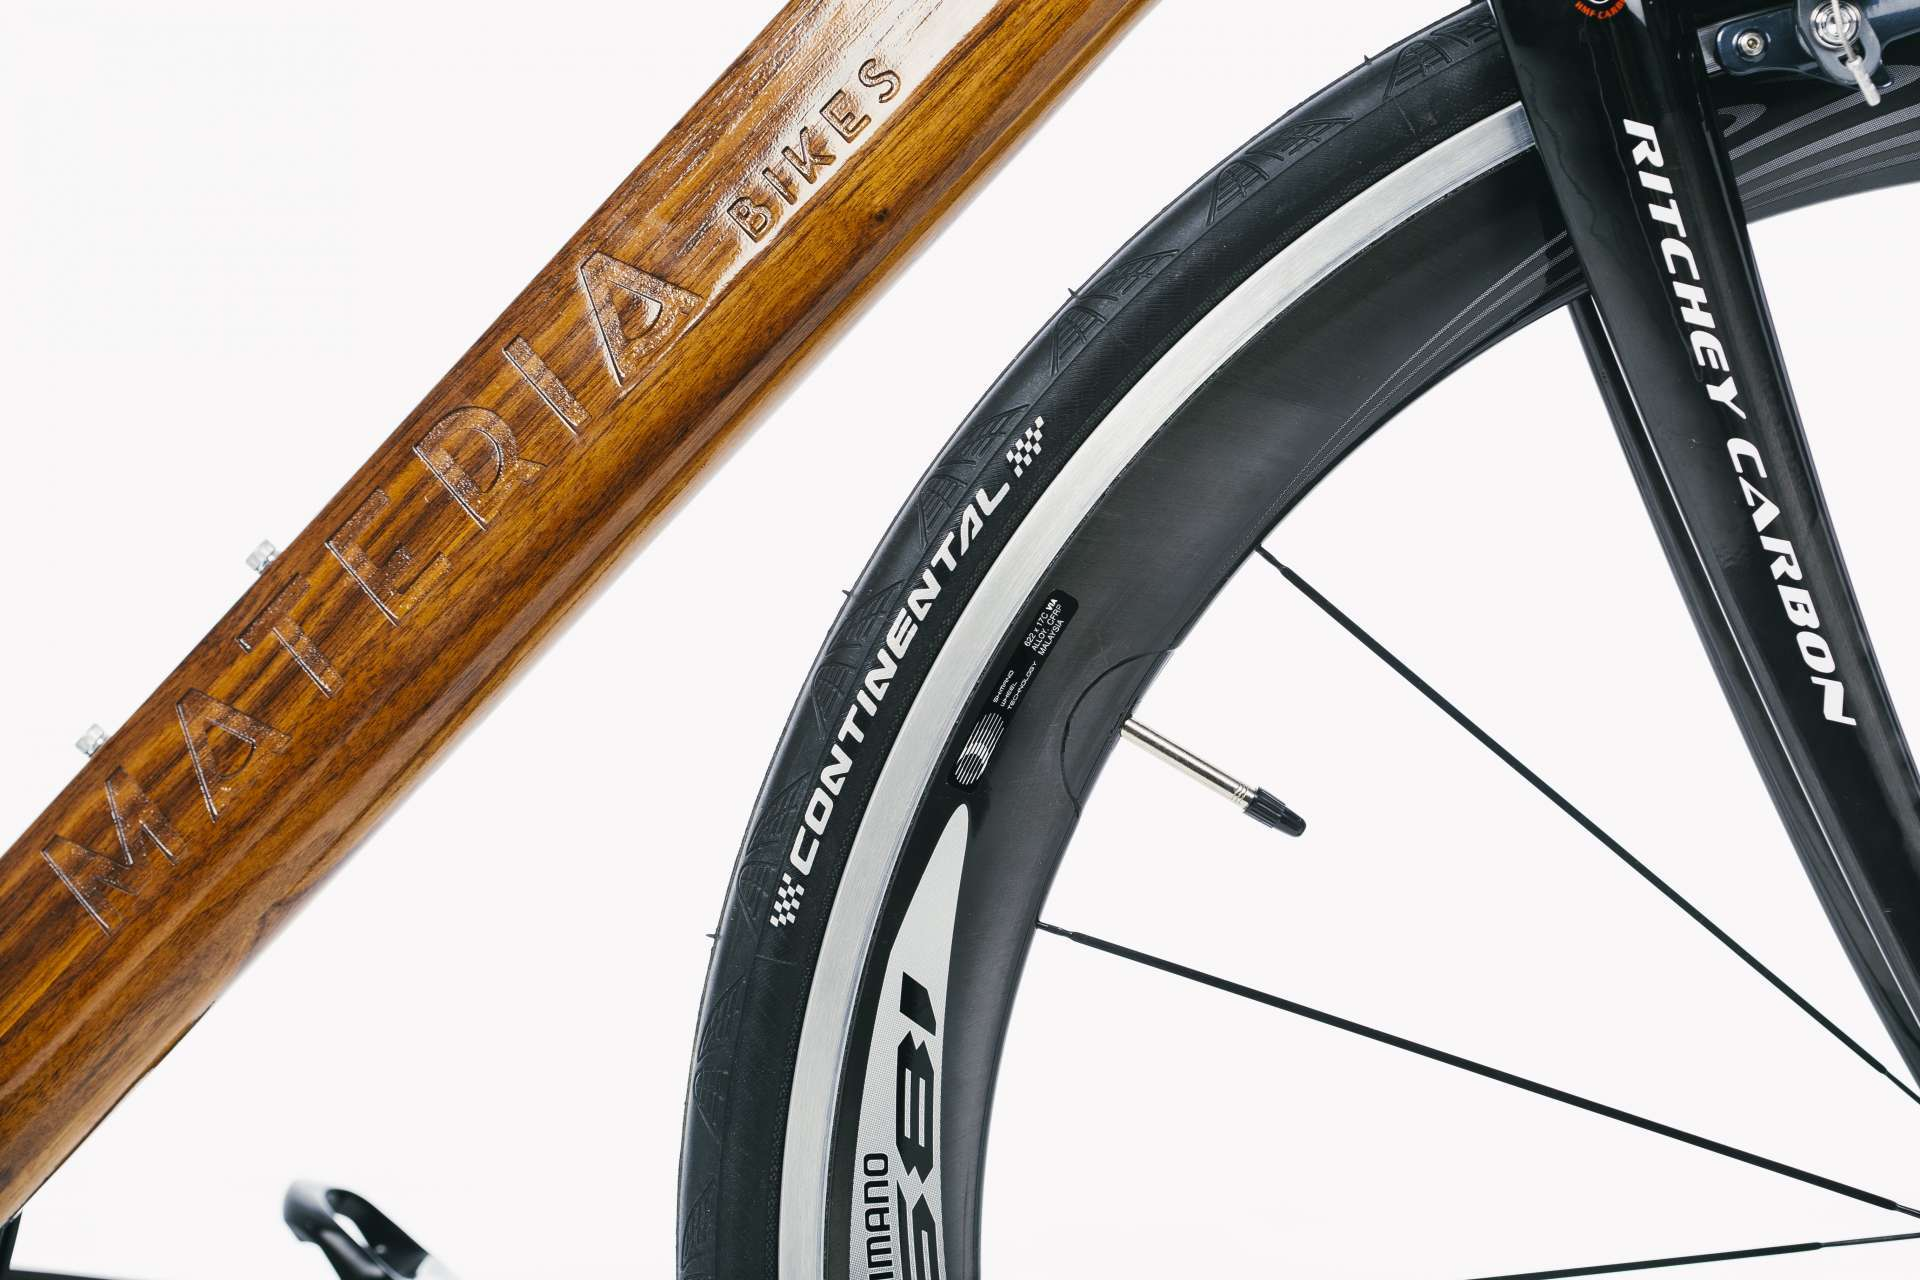 Materia Bikes - Wooden bicycle - Road Bike Tempo Ultegra